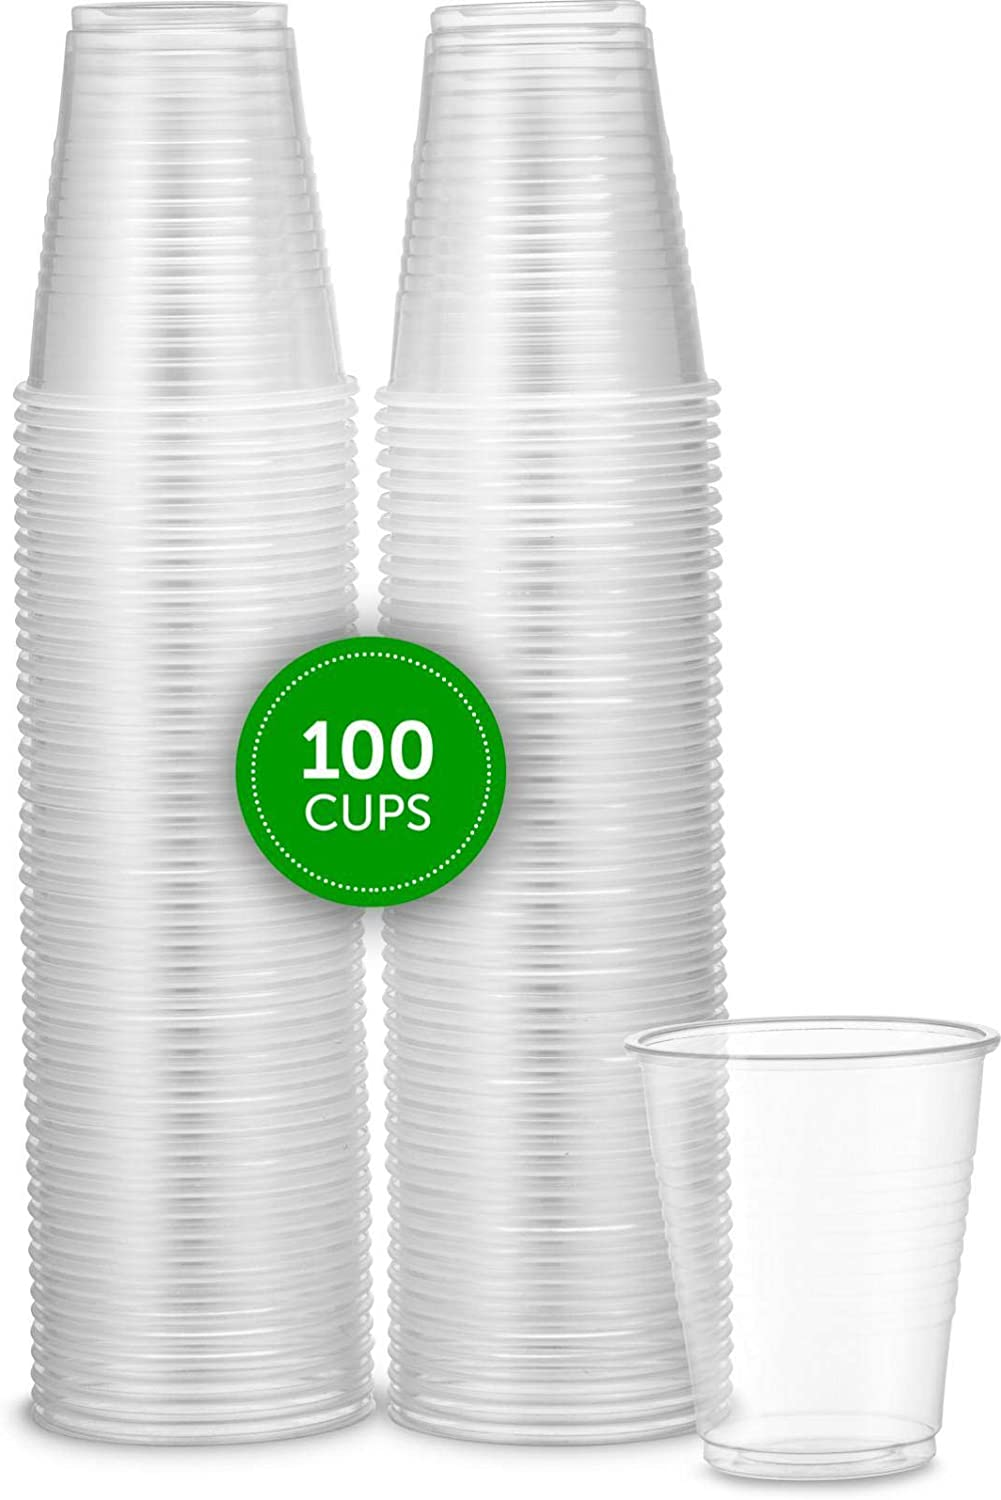 Plasticpro plastic Cups 5 oz Disposable Clear Beverage Tumbler (100 Count)